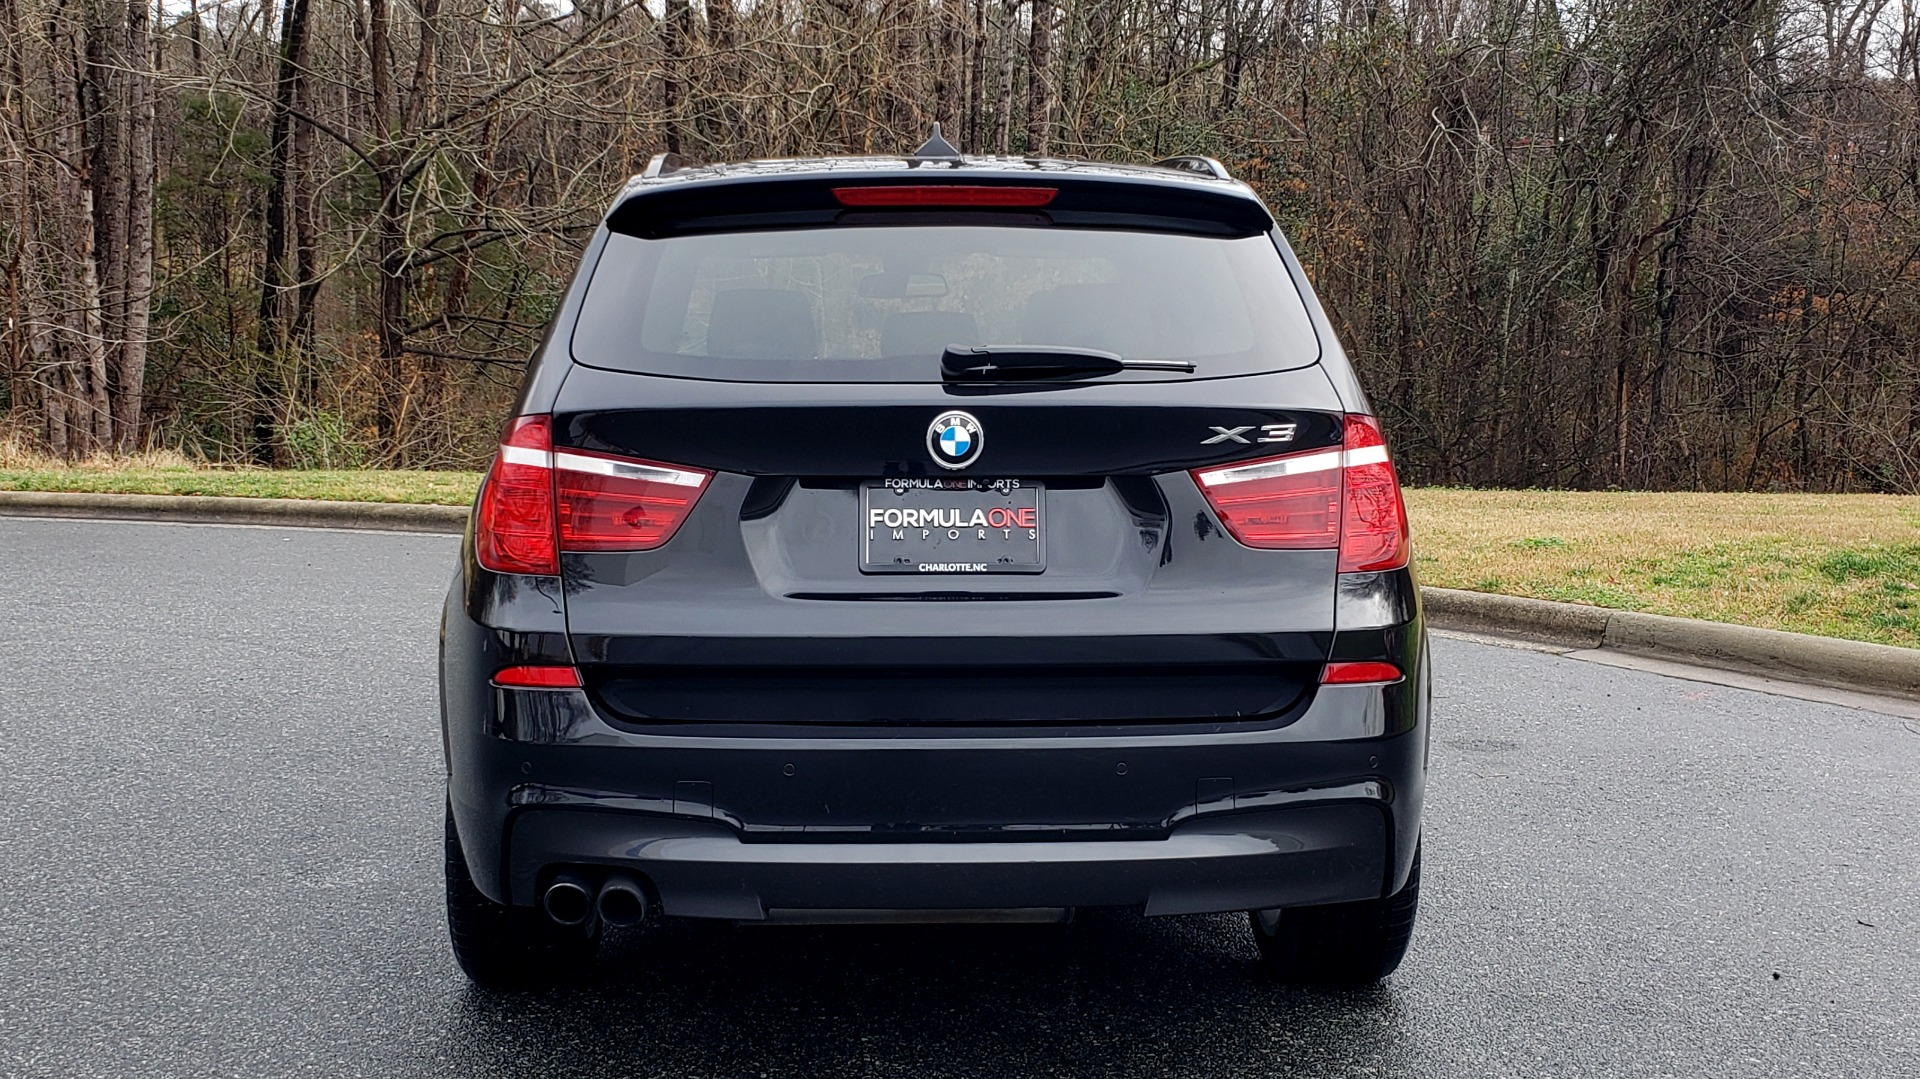 Used 2017 BMW X3 XDRIVE35I M-SPORT / DRVR ASST PLUS / TECHNOLOGY / HUD / BLIND SPOT for sale Sold at Formula Imports in Charlotte NC 28227 26